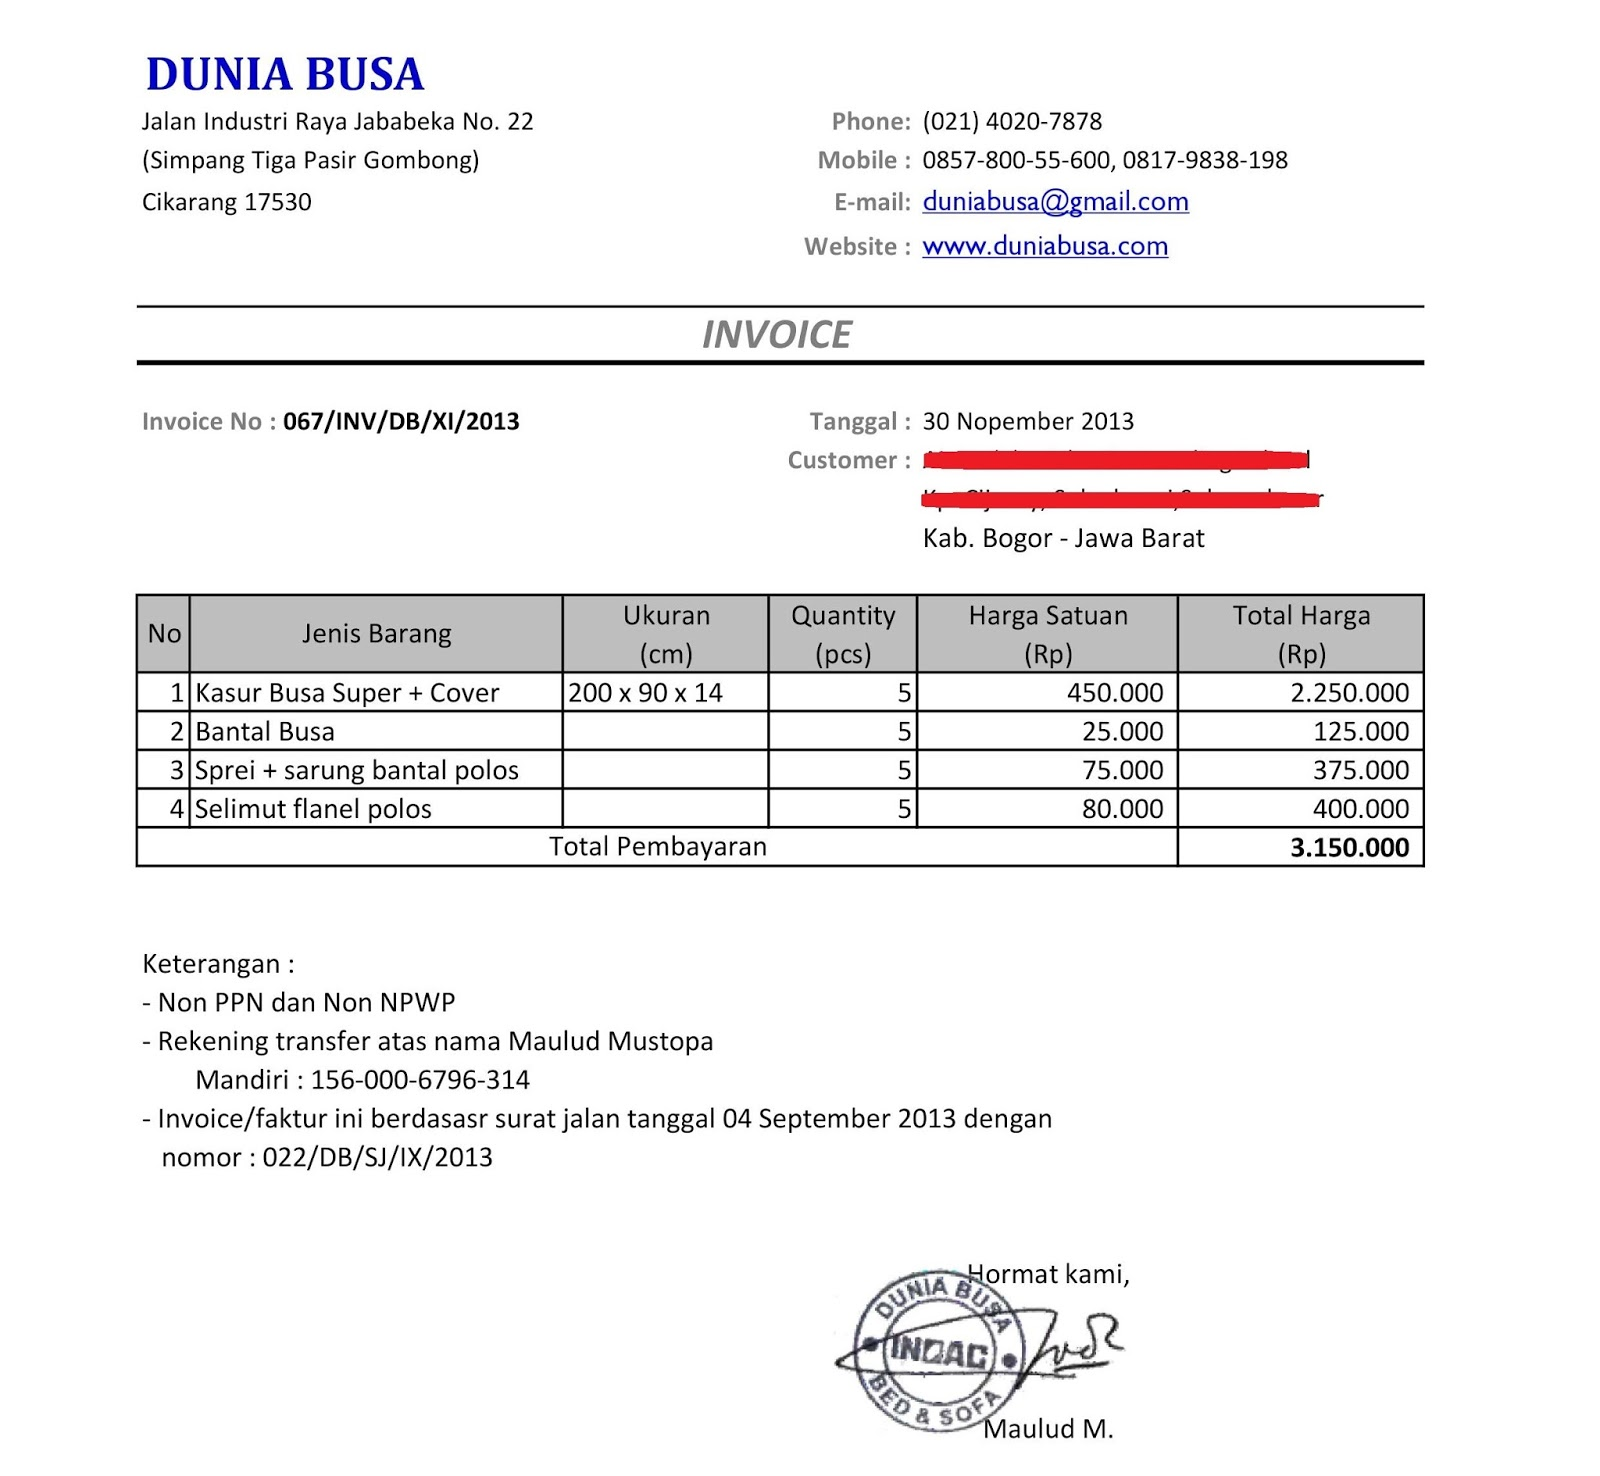 Poorboyzjeepclubus  Sweet Free Invoice Online  Create Invoice Online  Invoice Template  With Excellent Contoh Format Invoice Atau Surat Tagihan  Brankas Arsip  Free Invoice Online With Agreeable Example Of Proforma Invoice Also Simple Invoice Management System In Addition Template For Invoice For Services Rendered And Sample Ebay Invoice As Well As Free Basic Invoice Additionally Create Invoices In Excel From Sklepco With Poorboyzjeepclubus  Excellent Free Invoice Online  Create Invoice Online  Invoice Template  With Agreeable Contoh Format Invoice Atau Surat Tagihan  Brankas Arsip  Free Invoice Online And Sweet Example Of Proforma Invoice Also Simple Invoice Management System In Addition Template For Invoice For Services Rendered From Sklepco